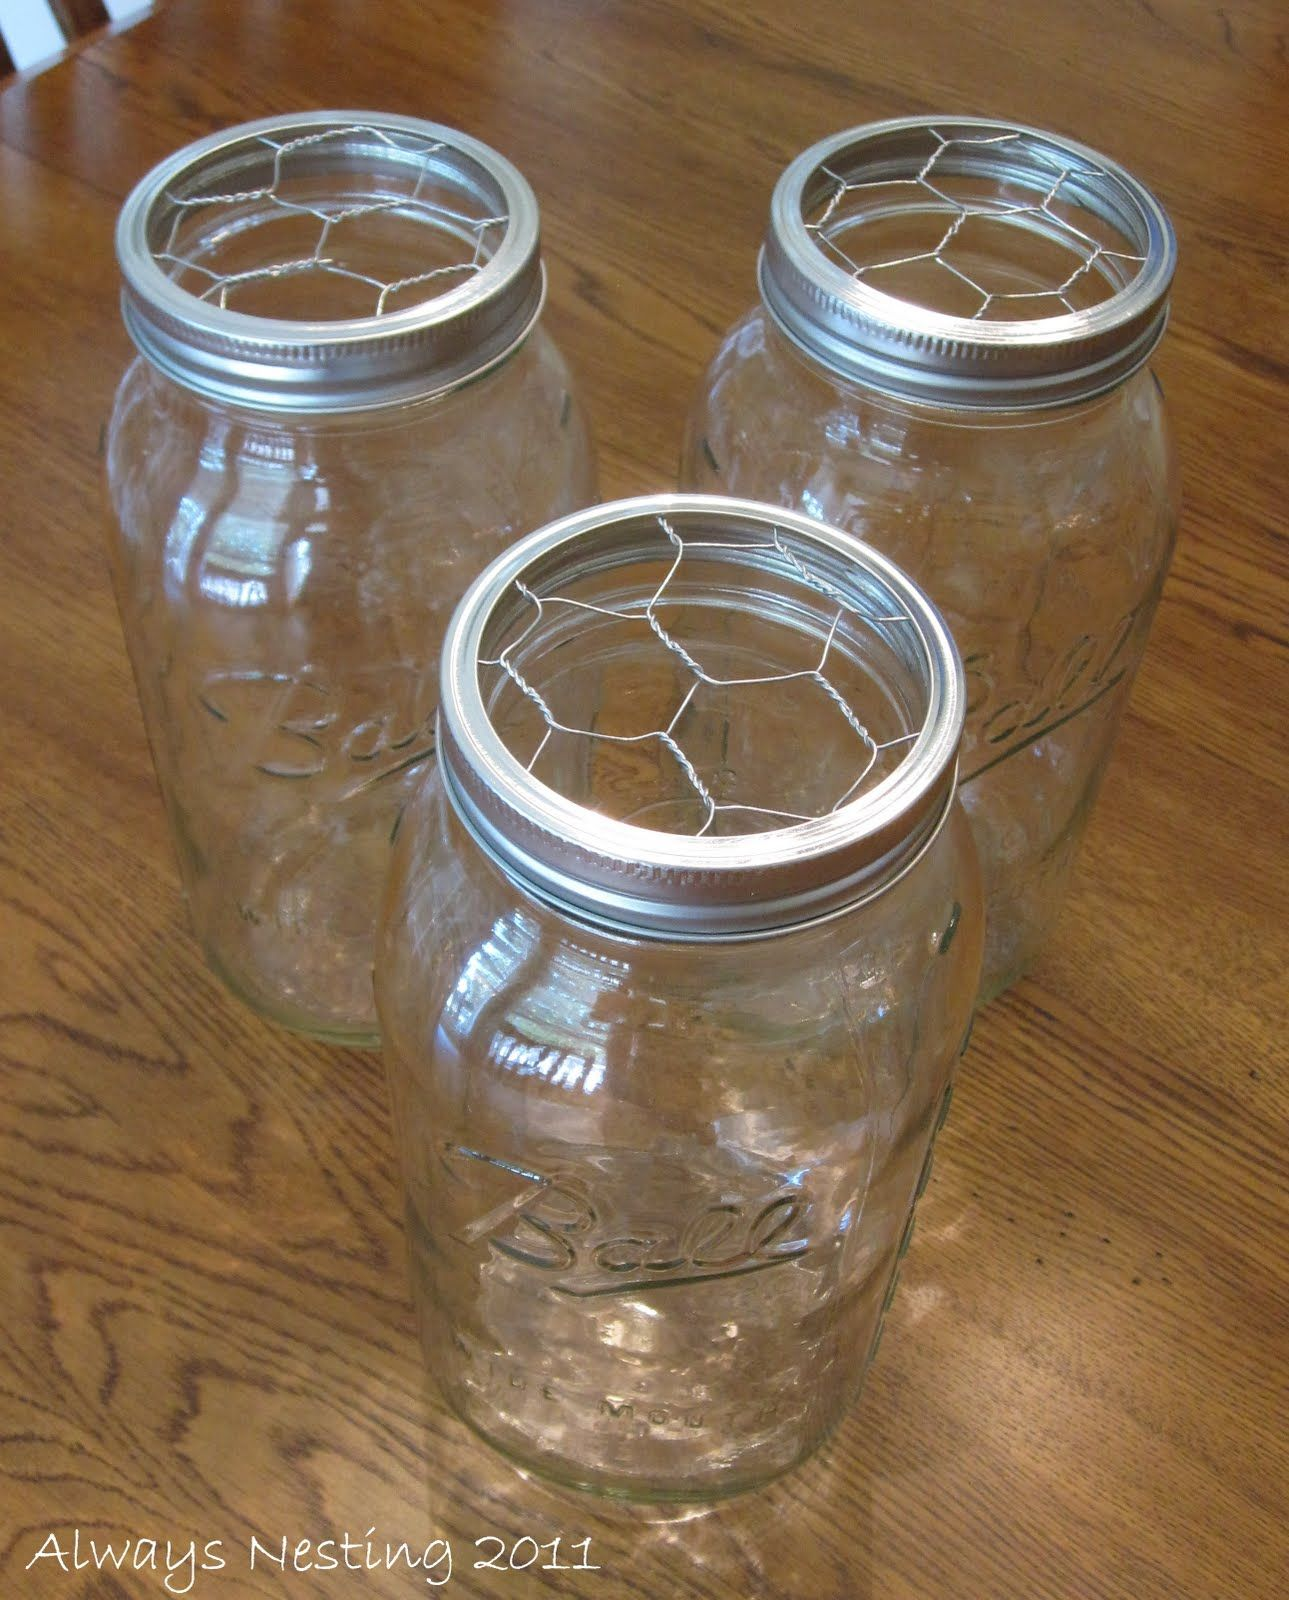 Chicken wire mason jars with lid rings vases for flower td idea centerpiece mason jar flower vases chicken wire mason jars with lid rings vases for flower display or centerpieces reviewsmspy